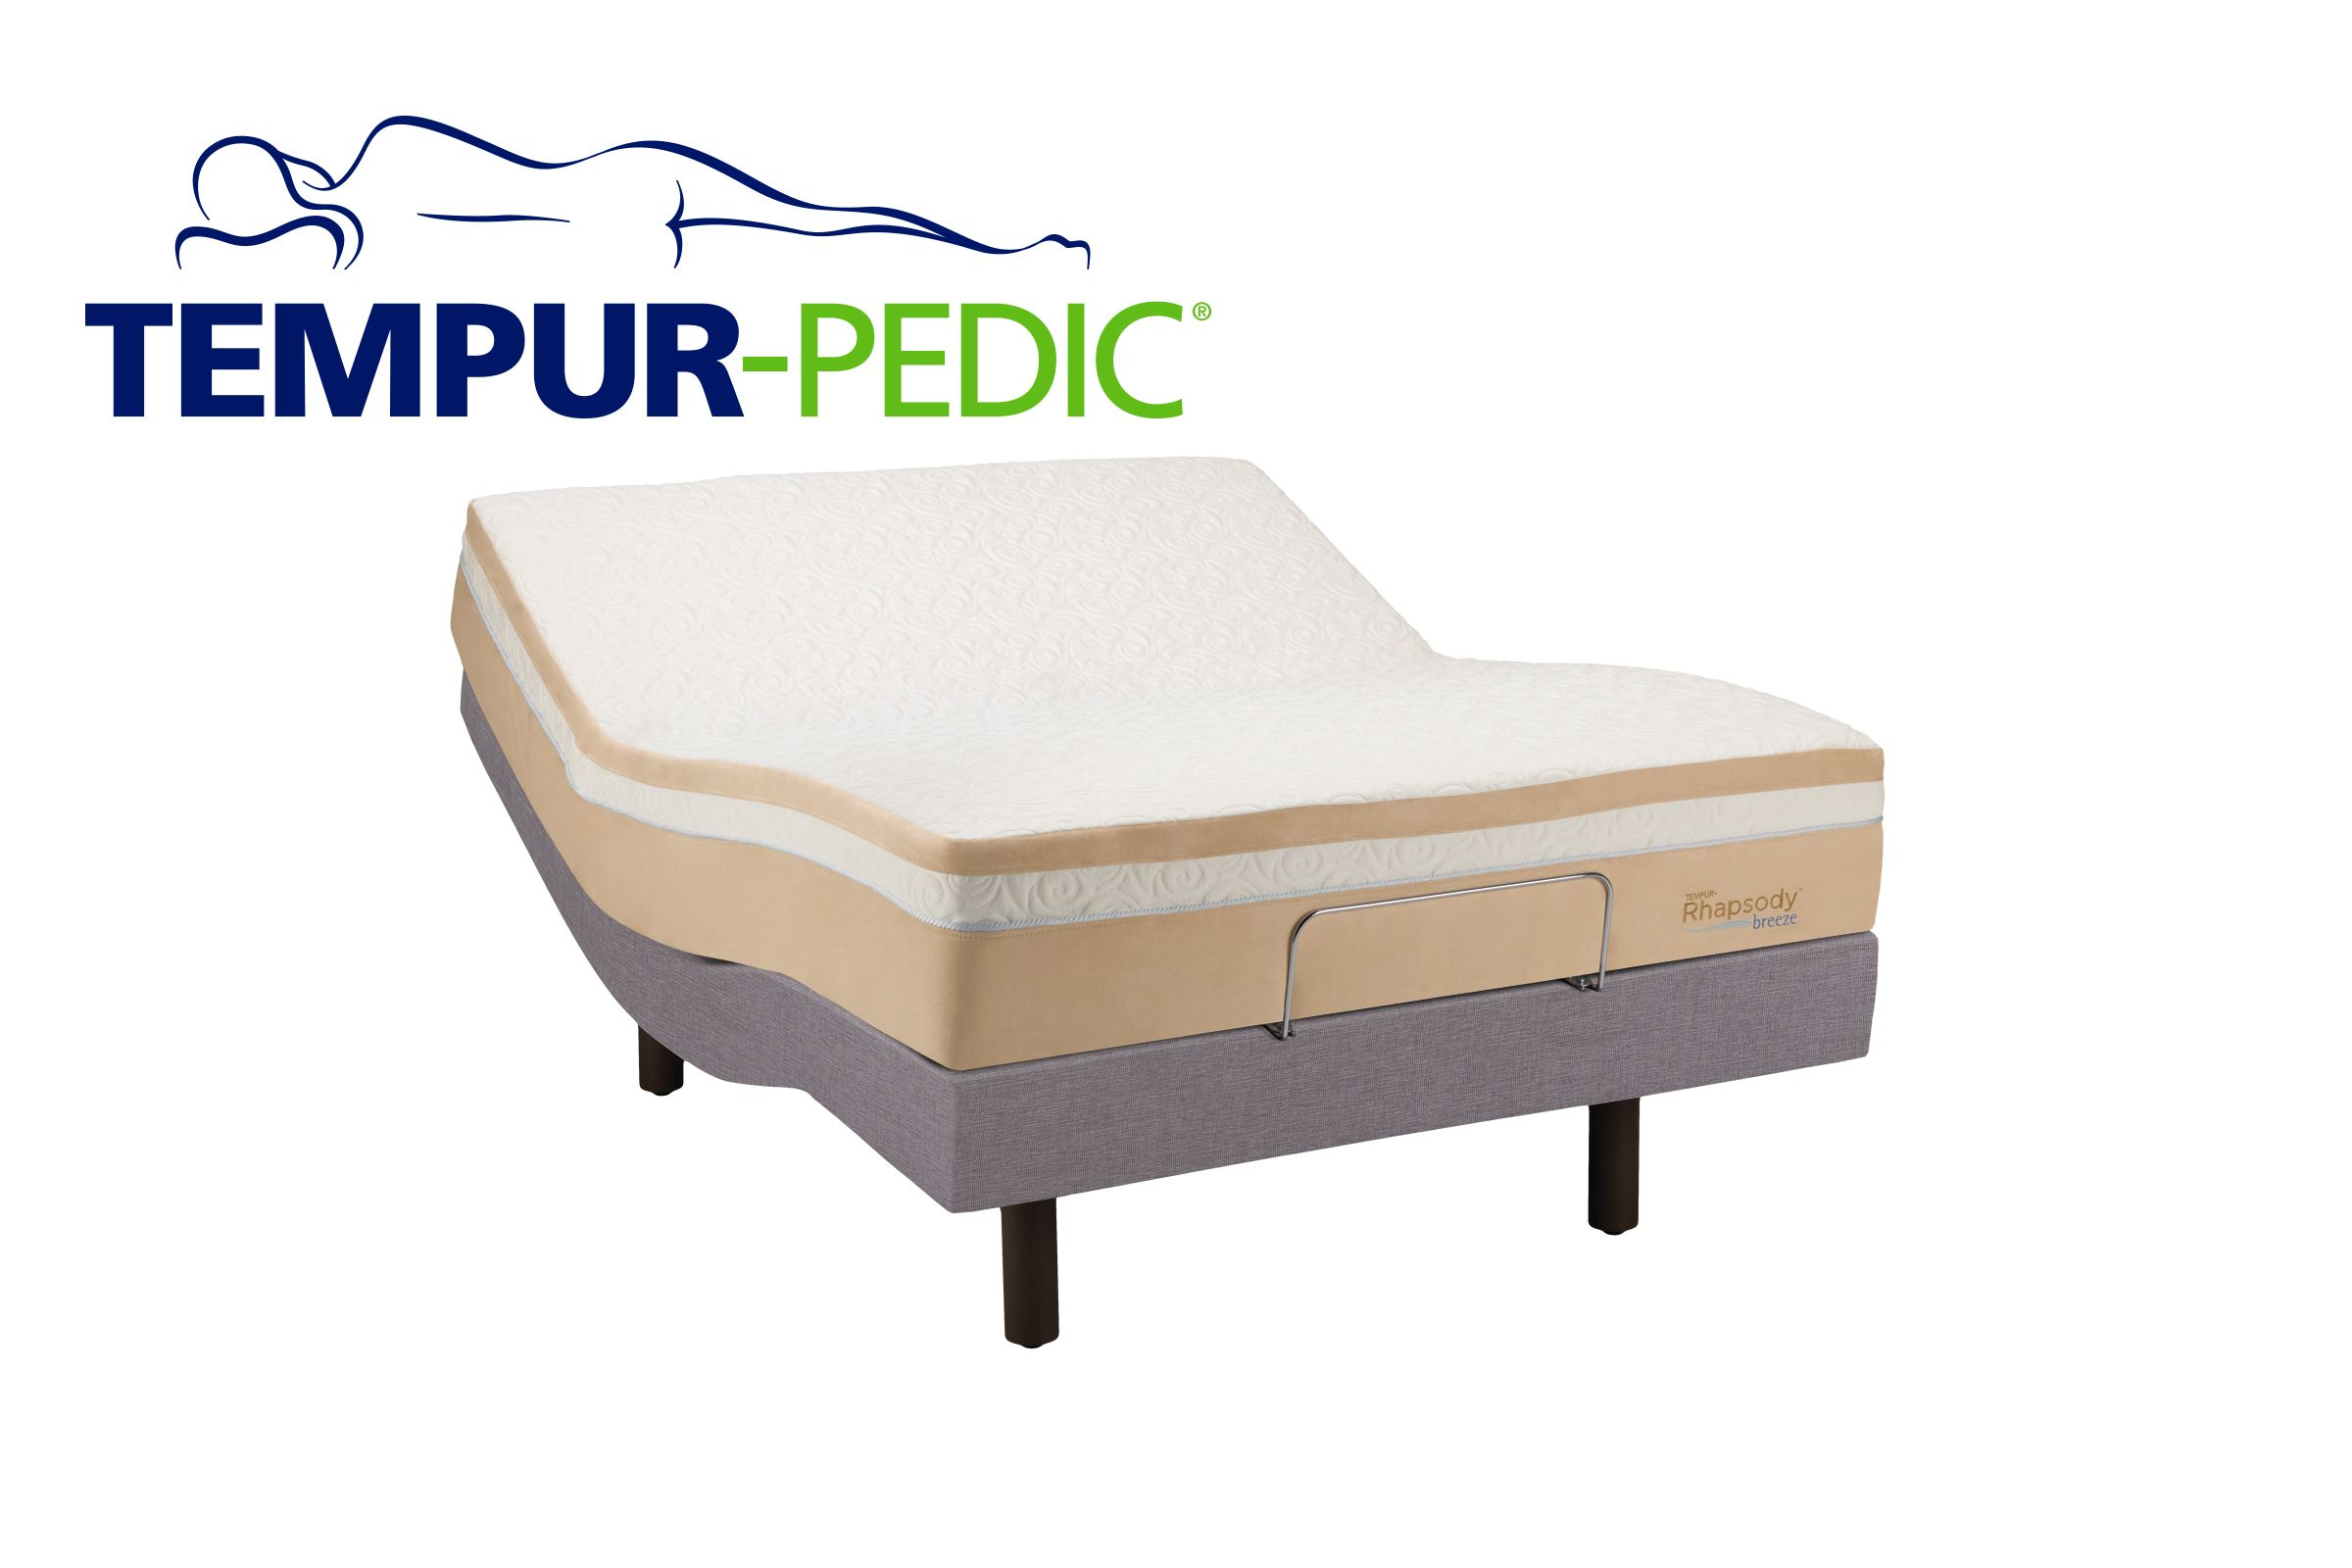 tempurpedic mattress topper for sofa bed small semi circle uk king. costco sale: serenity by ...